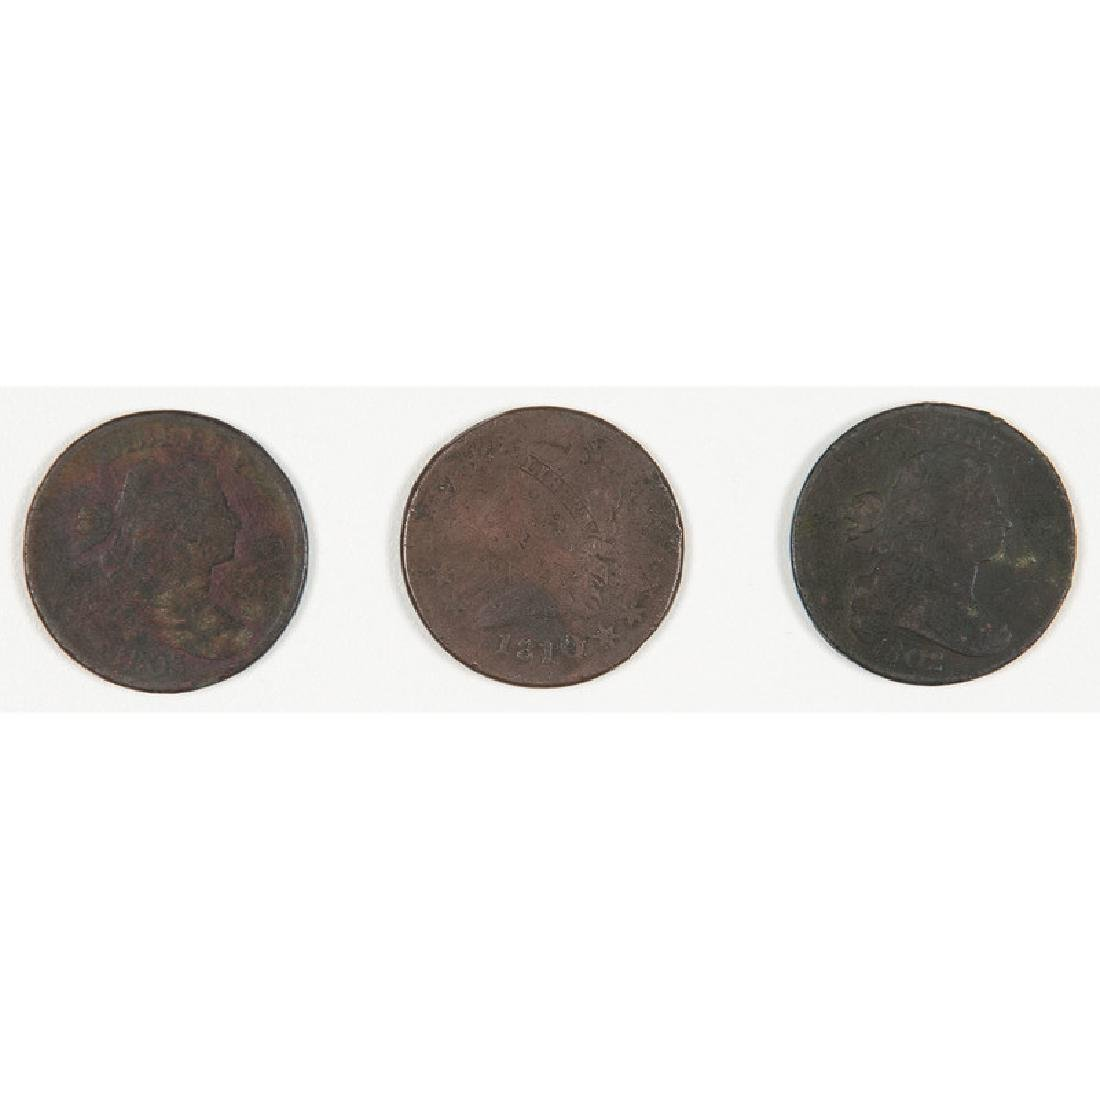 United States Large Cents 1802-1810